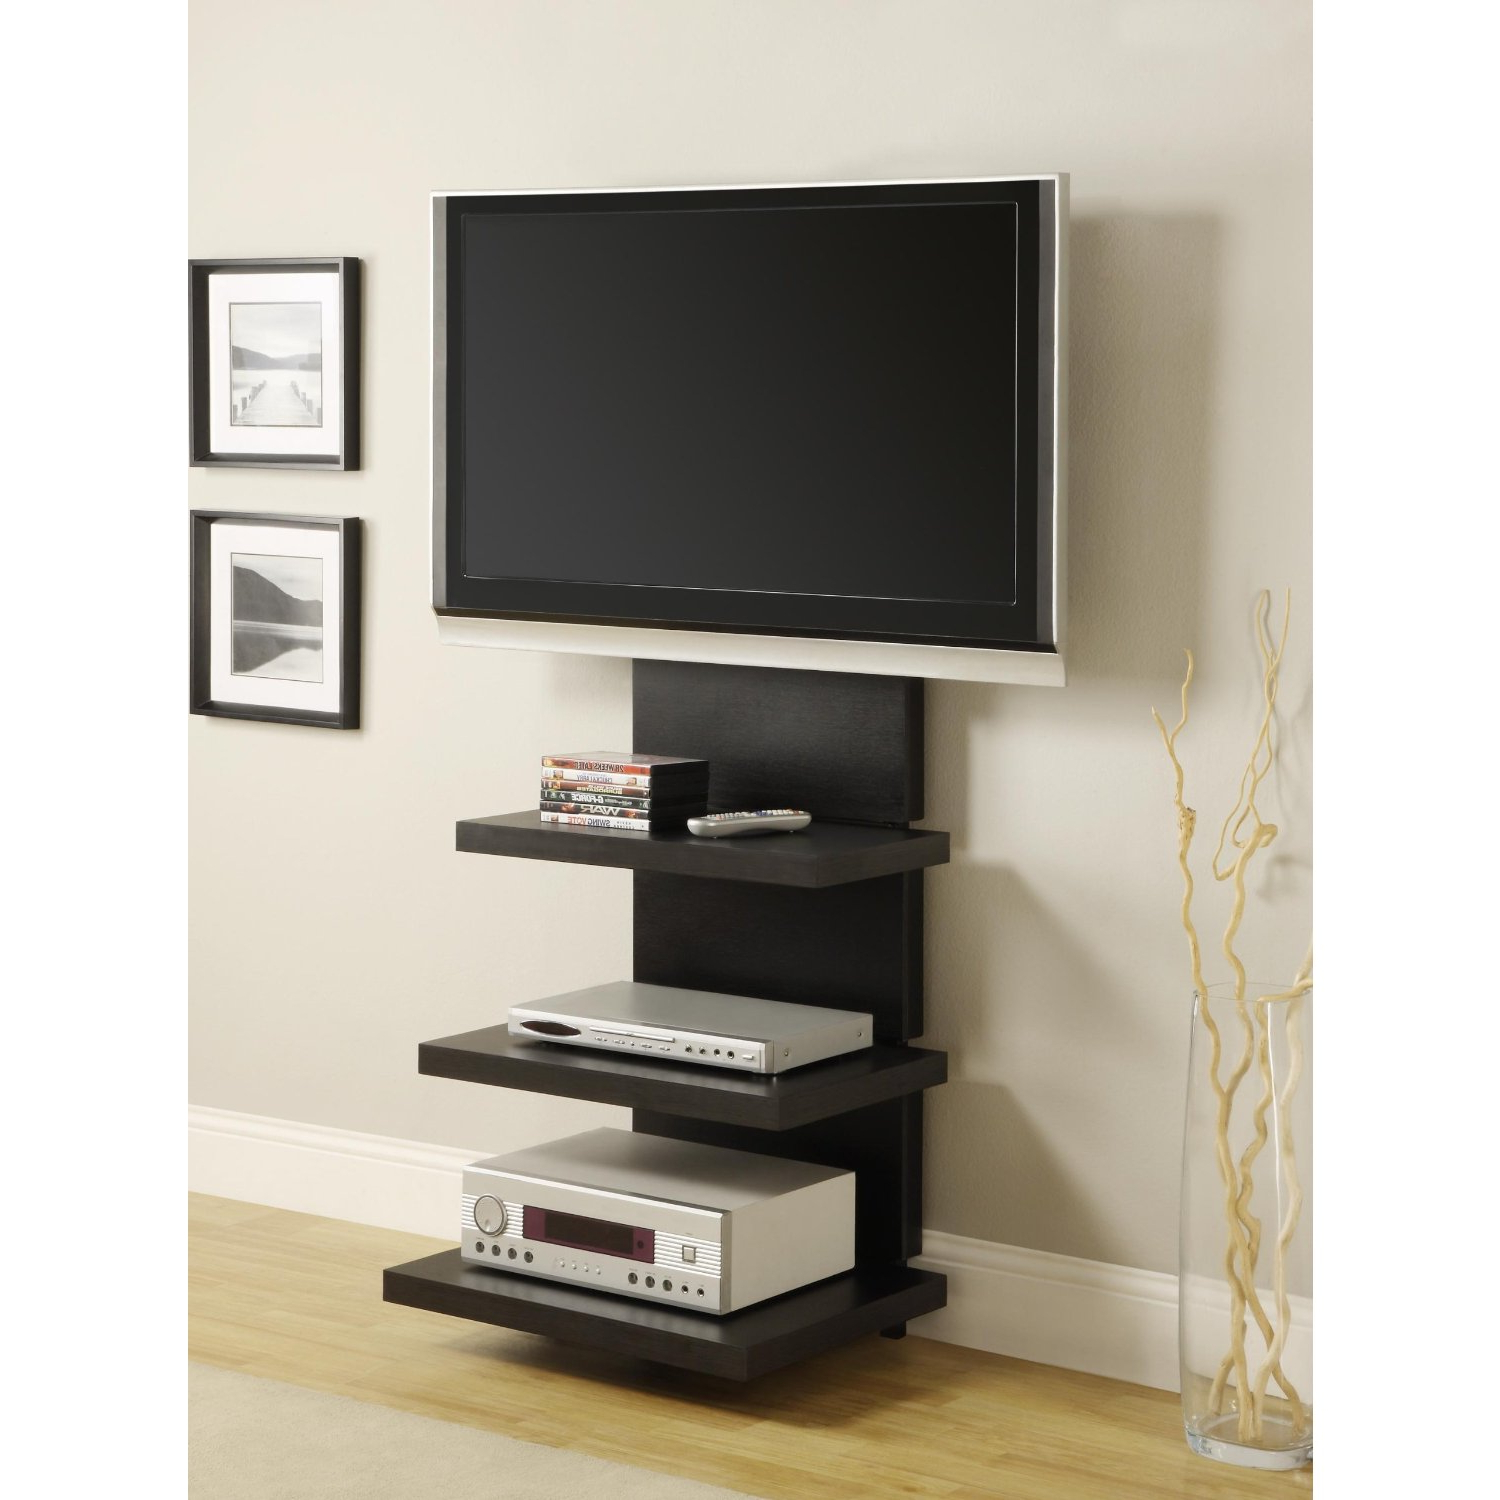 Favorite Bedroom Television Cabinets And Stands Small Corner Tv Unit Tall Tv Within Corner Tv Cabinets For Flat Screens (Gallery 17 of 20)